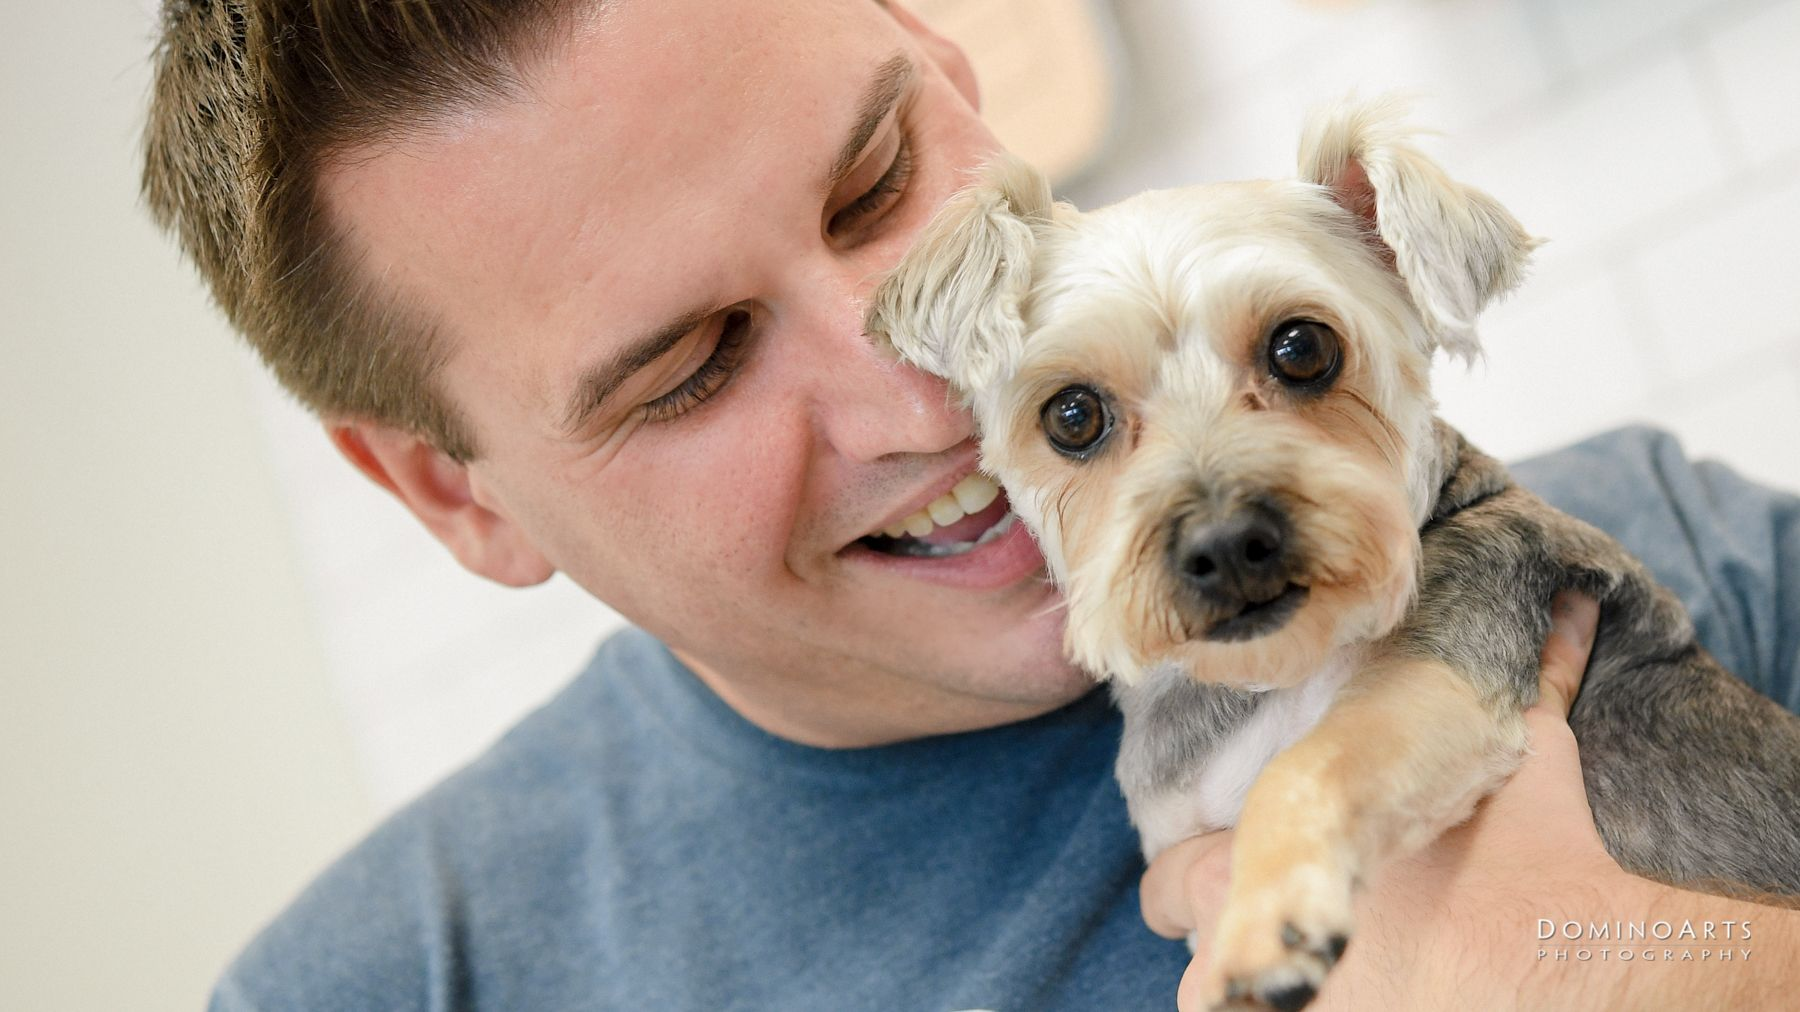 All our puppy lovers would appreciate this one and this company. They take great care of your extended family members. Tim Vogel #DogLover #CorporateSession #DominoArts #Corporate #Photos #PuppyPhotography #DogPictures #PuppyLove